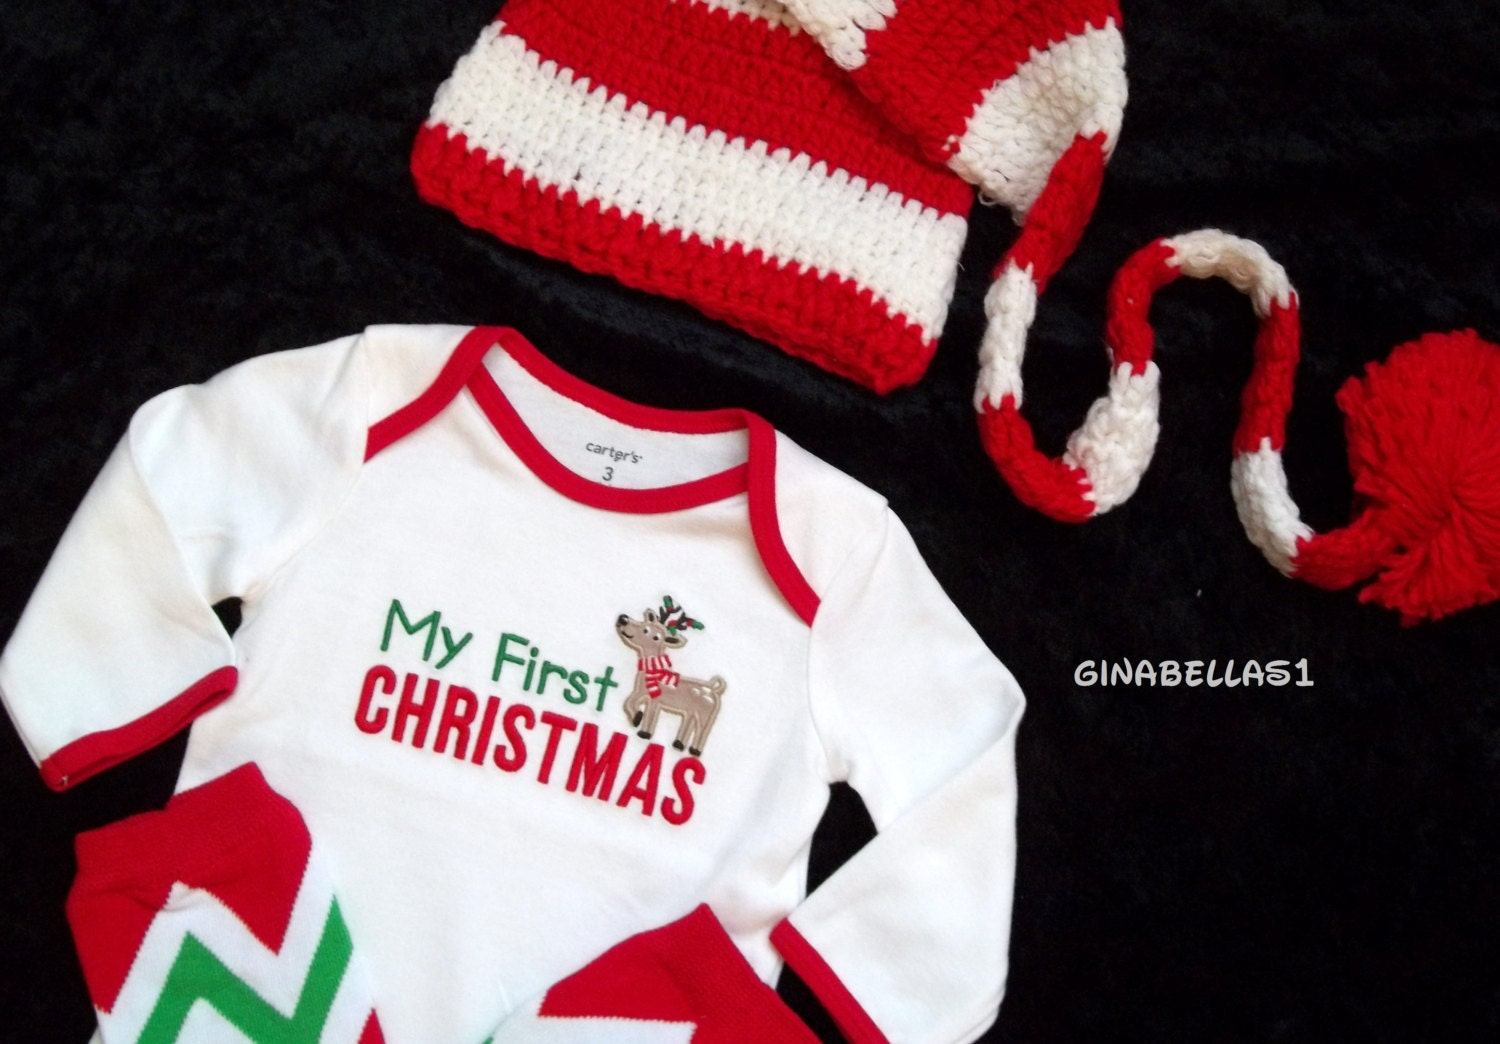 First Christmas outfit Santa Baby boy girl little man mister